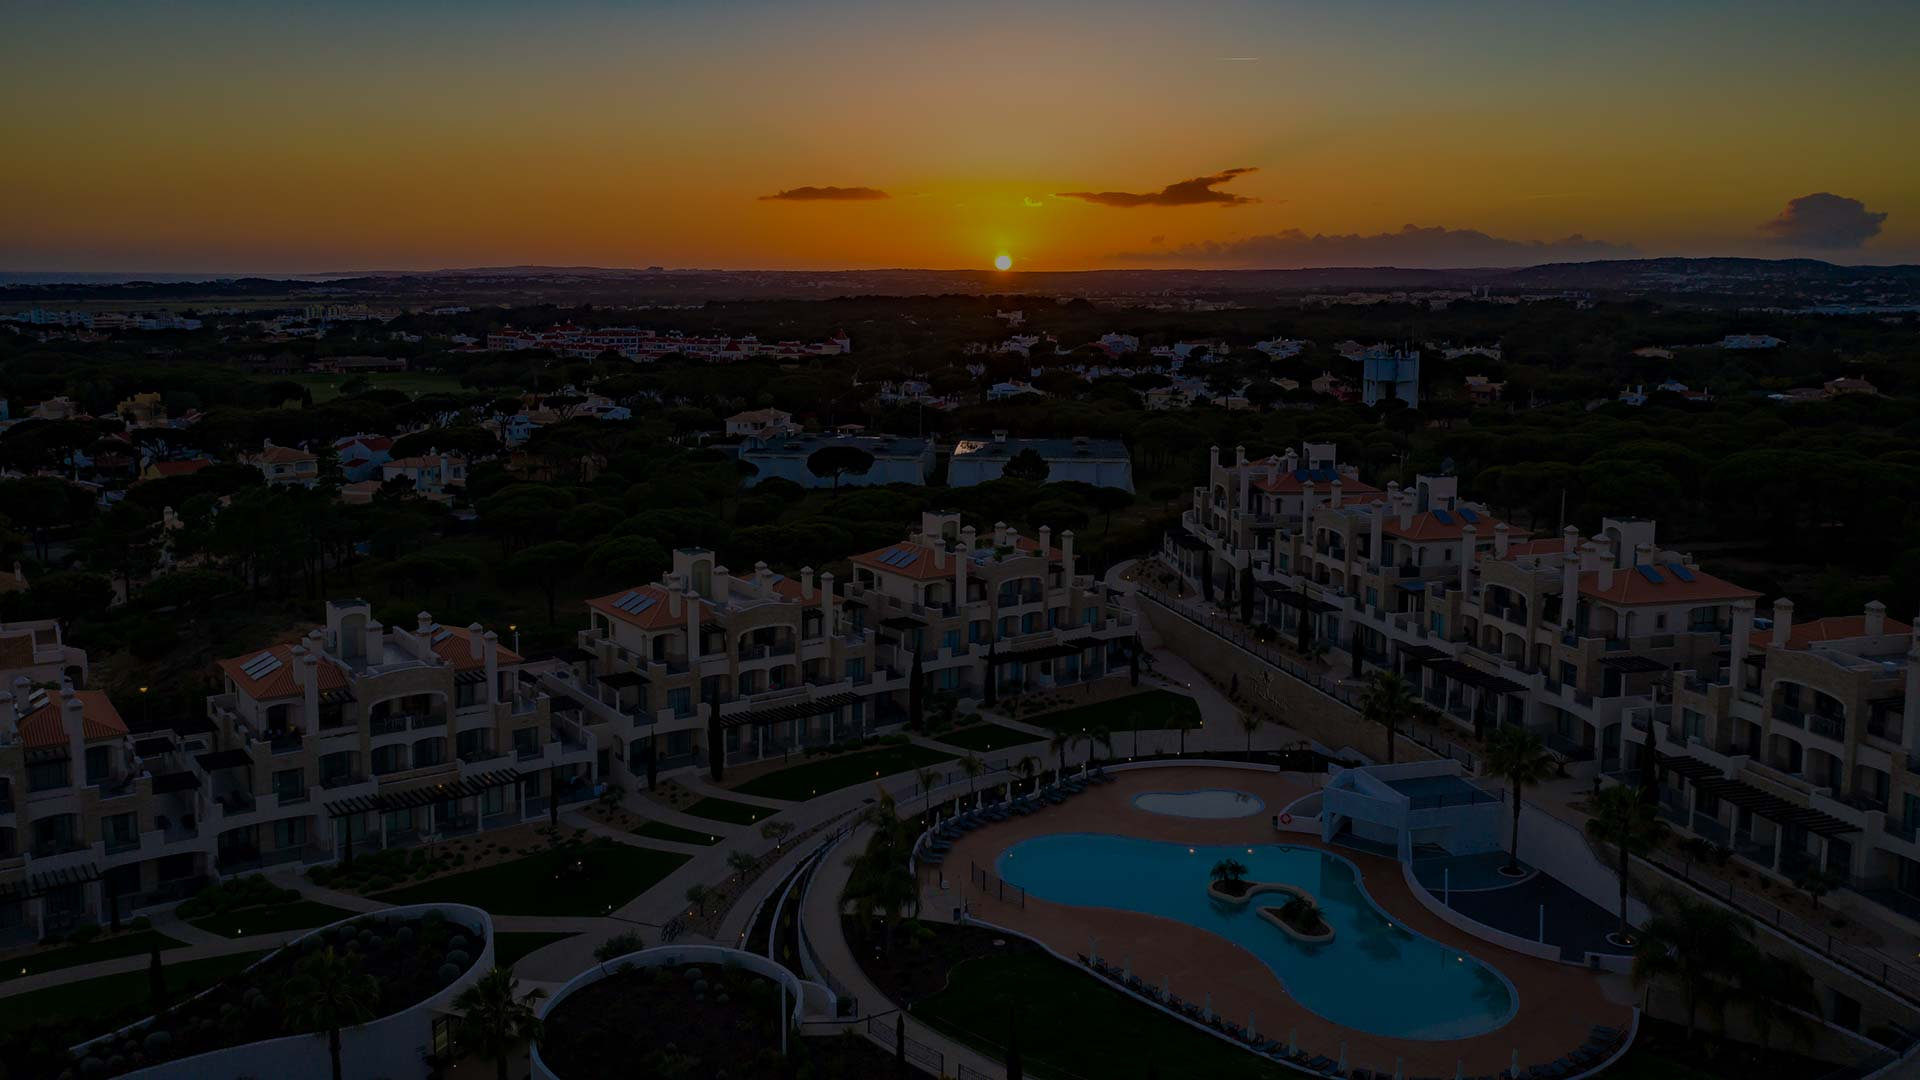 Aerial view of Pine Hills, Vilamoura, Portugal at Sunset